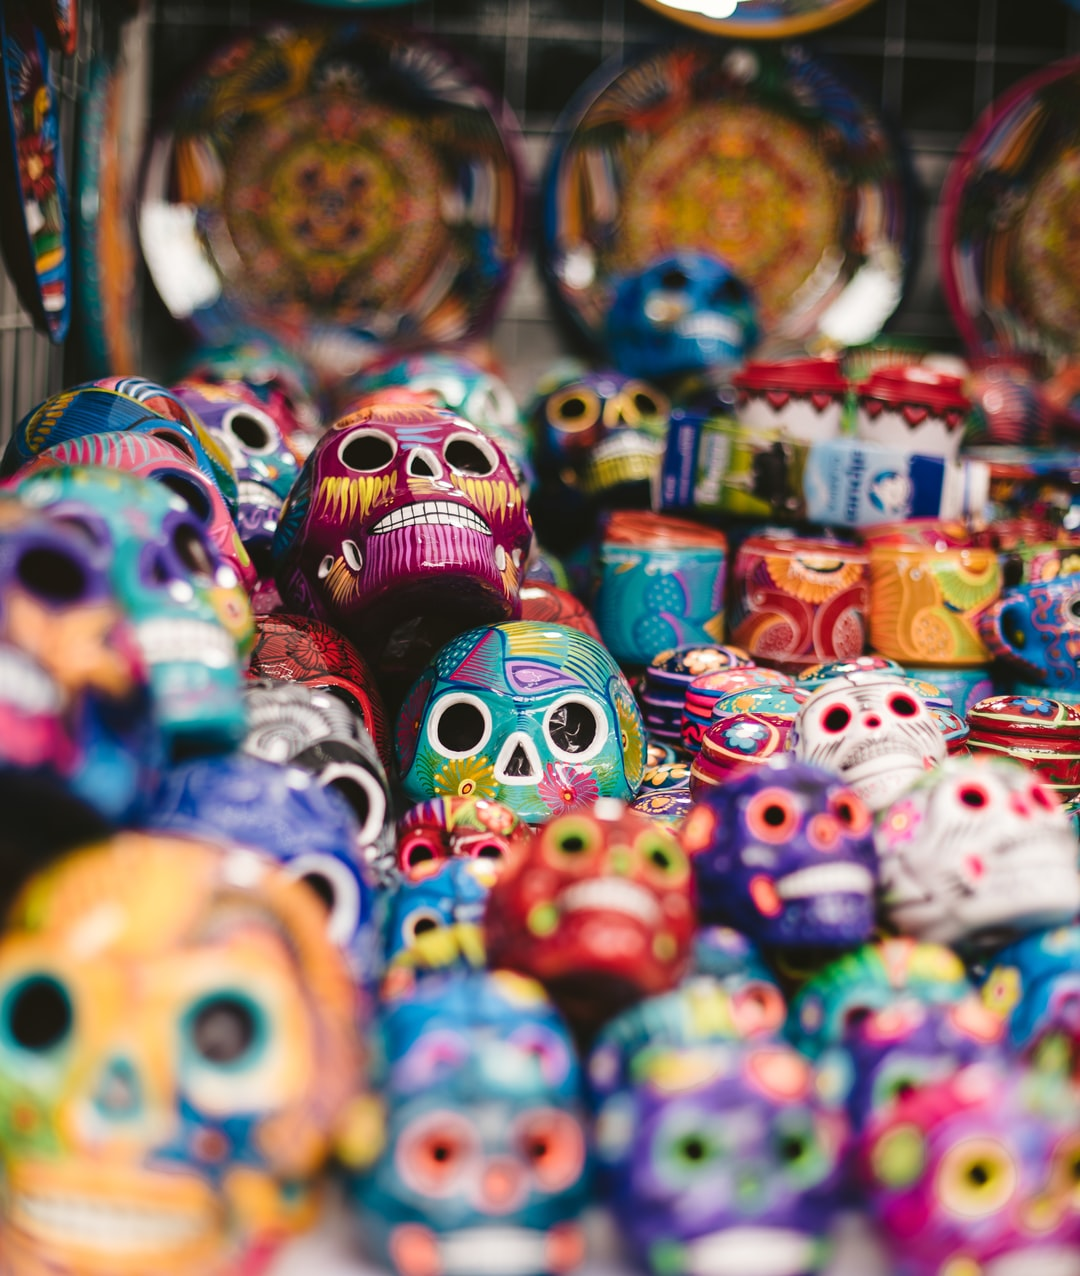 Colorful skulls for sale in Mexico City during Día de los Muertos.